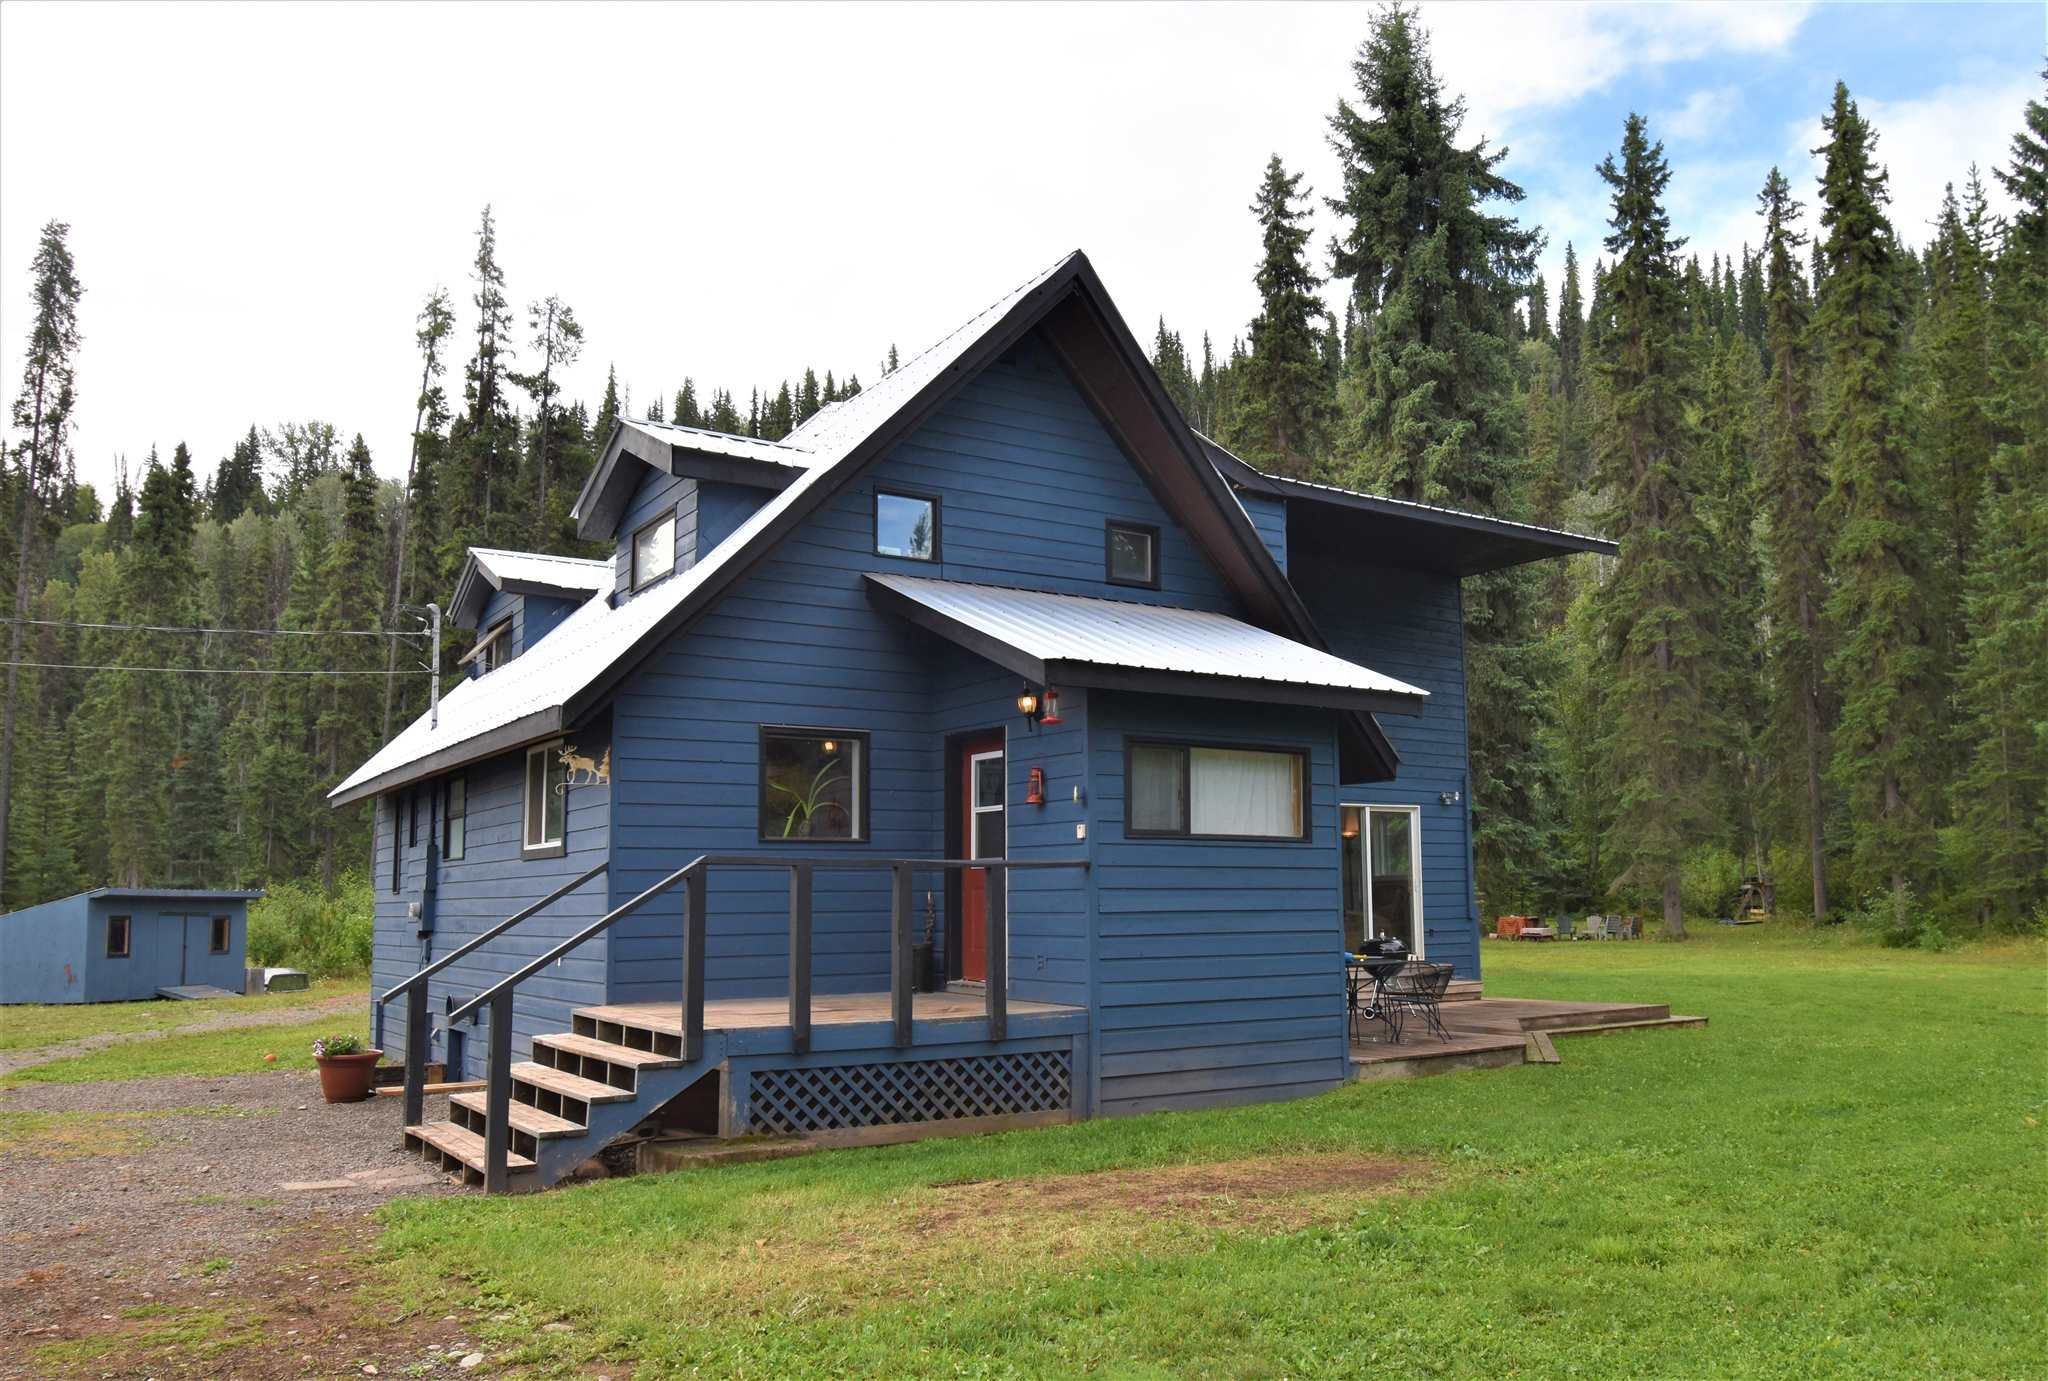 Main Photo: 1225 AVELING COALMINE Road in Smithers: Smithers - Rural House for sale (Smithers And Area (Zone 54))  : MLS®# R2607586